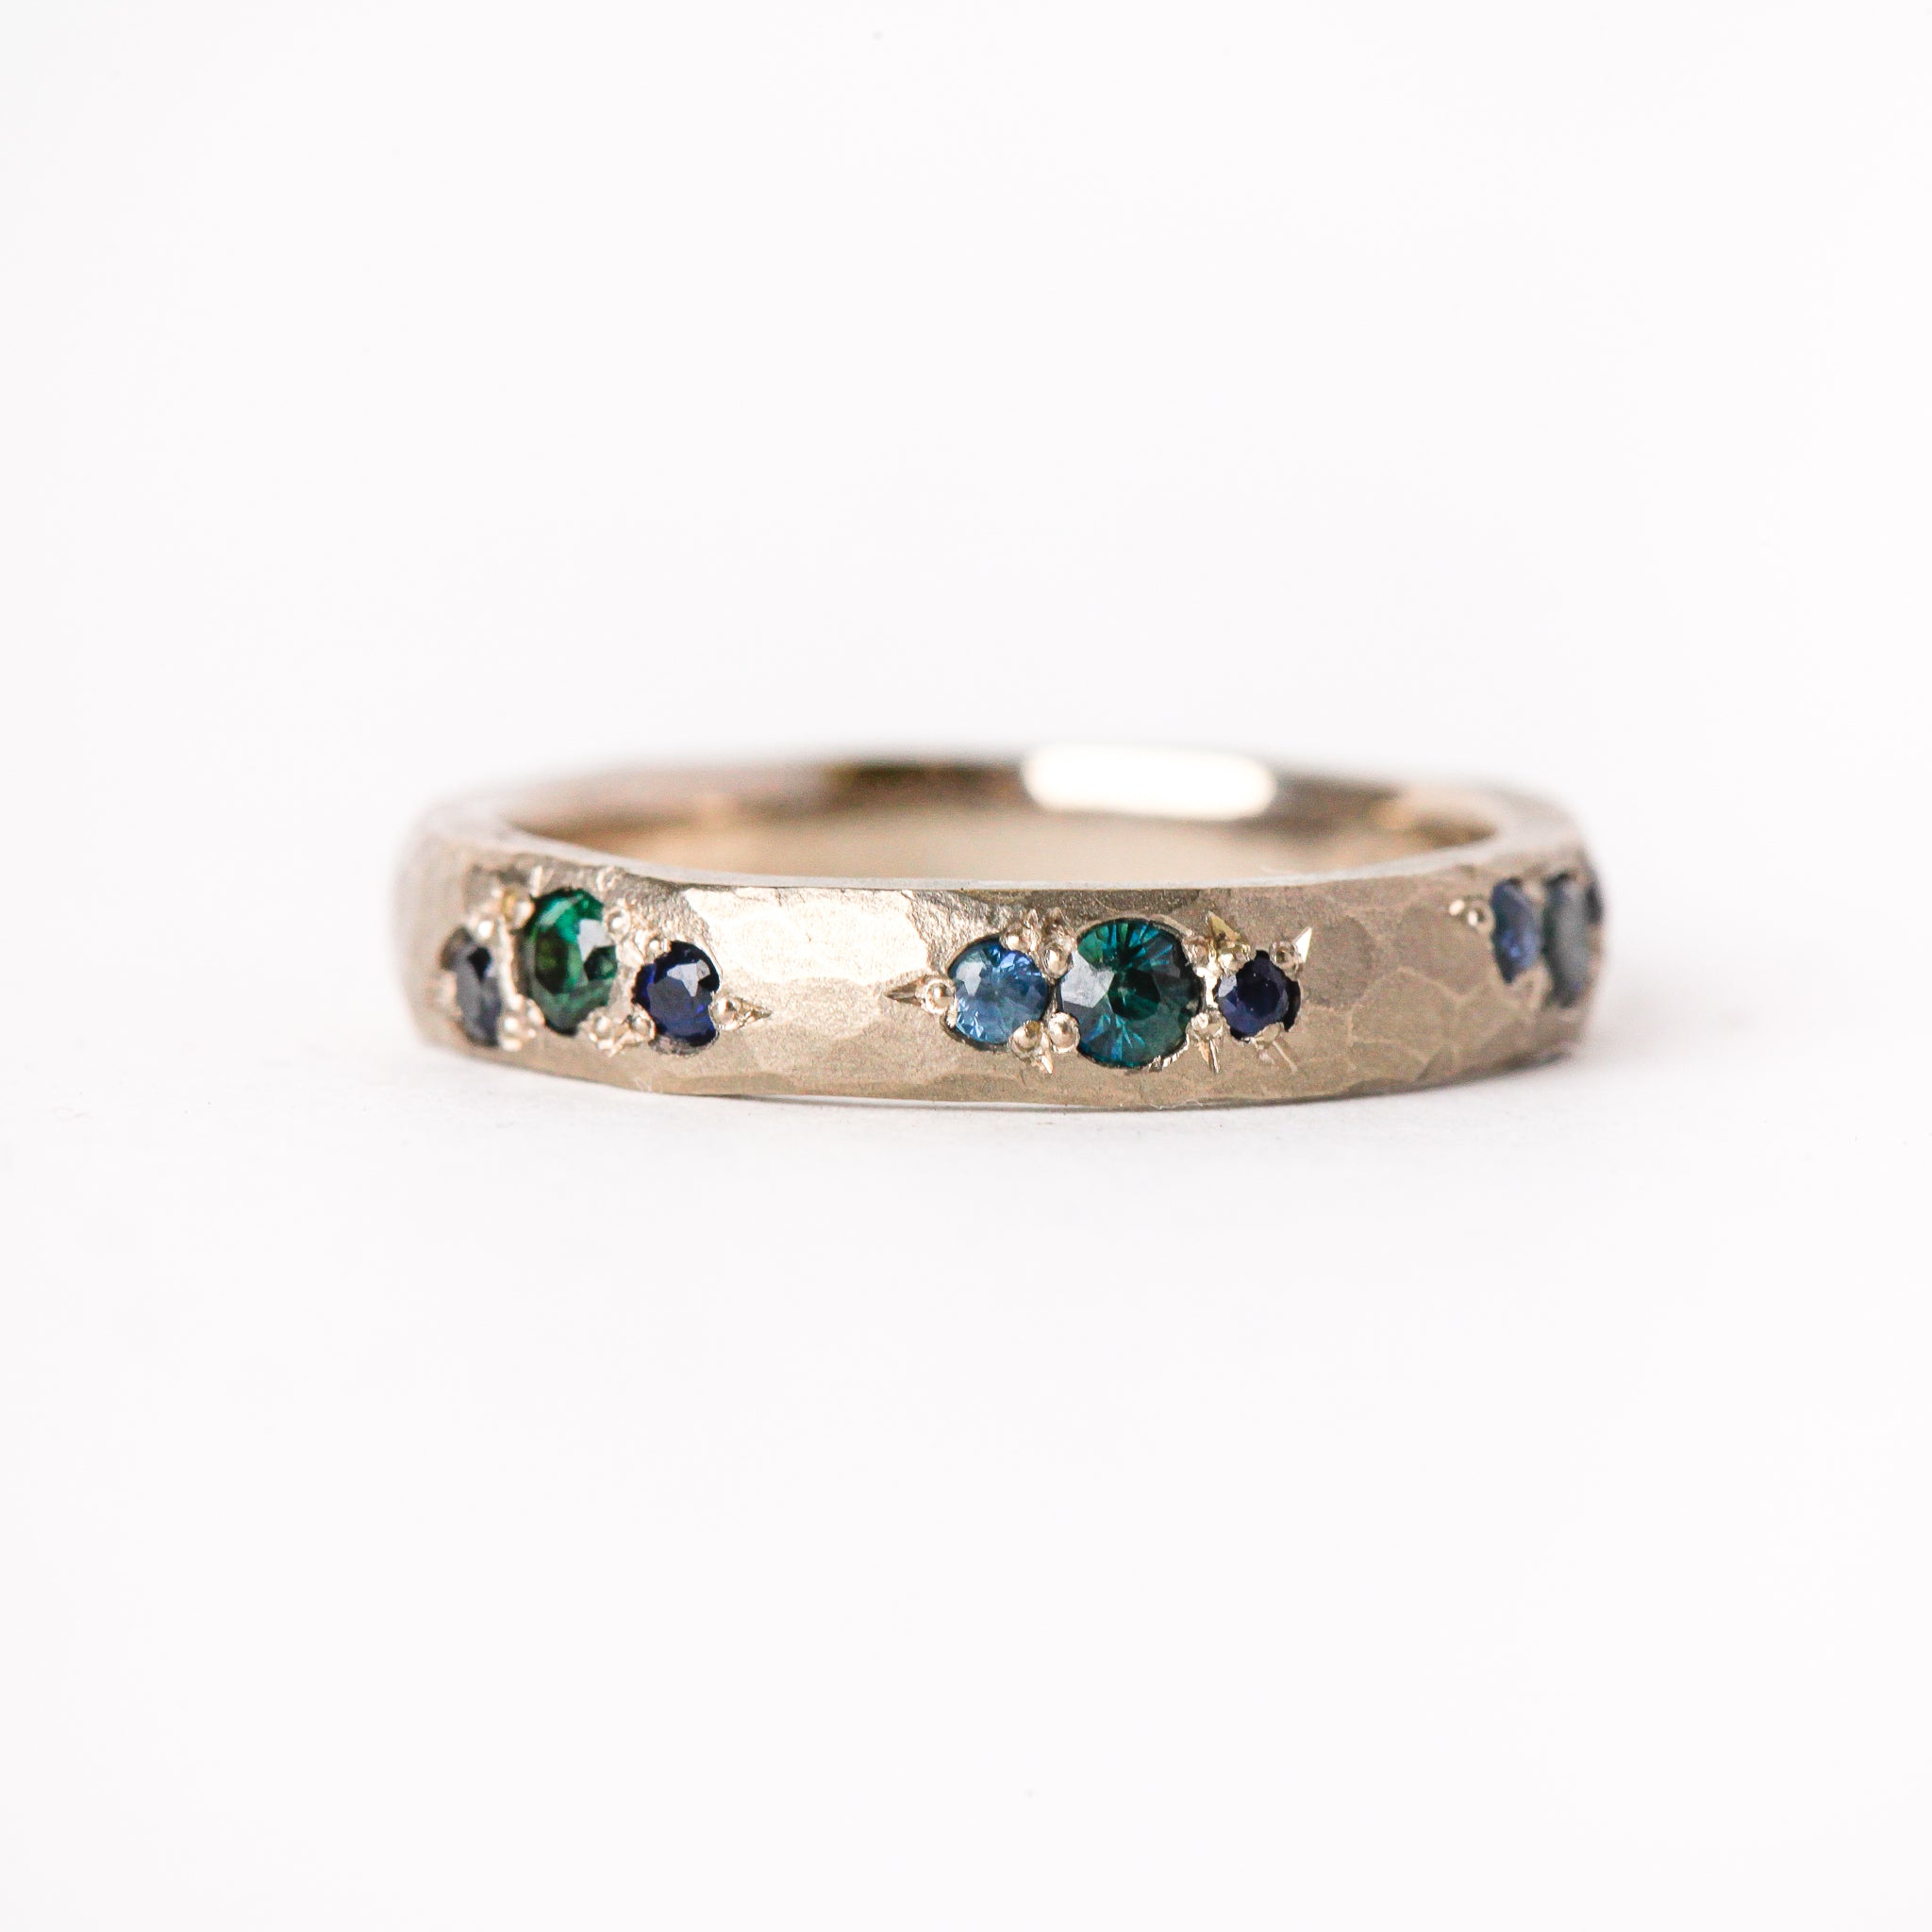 Handmade Men's Wedding Band in 18ct White Gold with Ethically Sourced Australian Sapphires